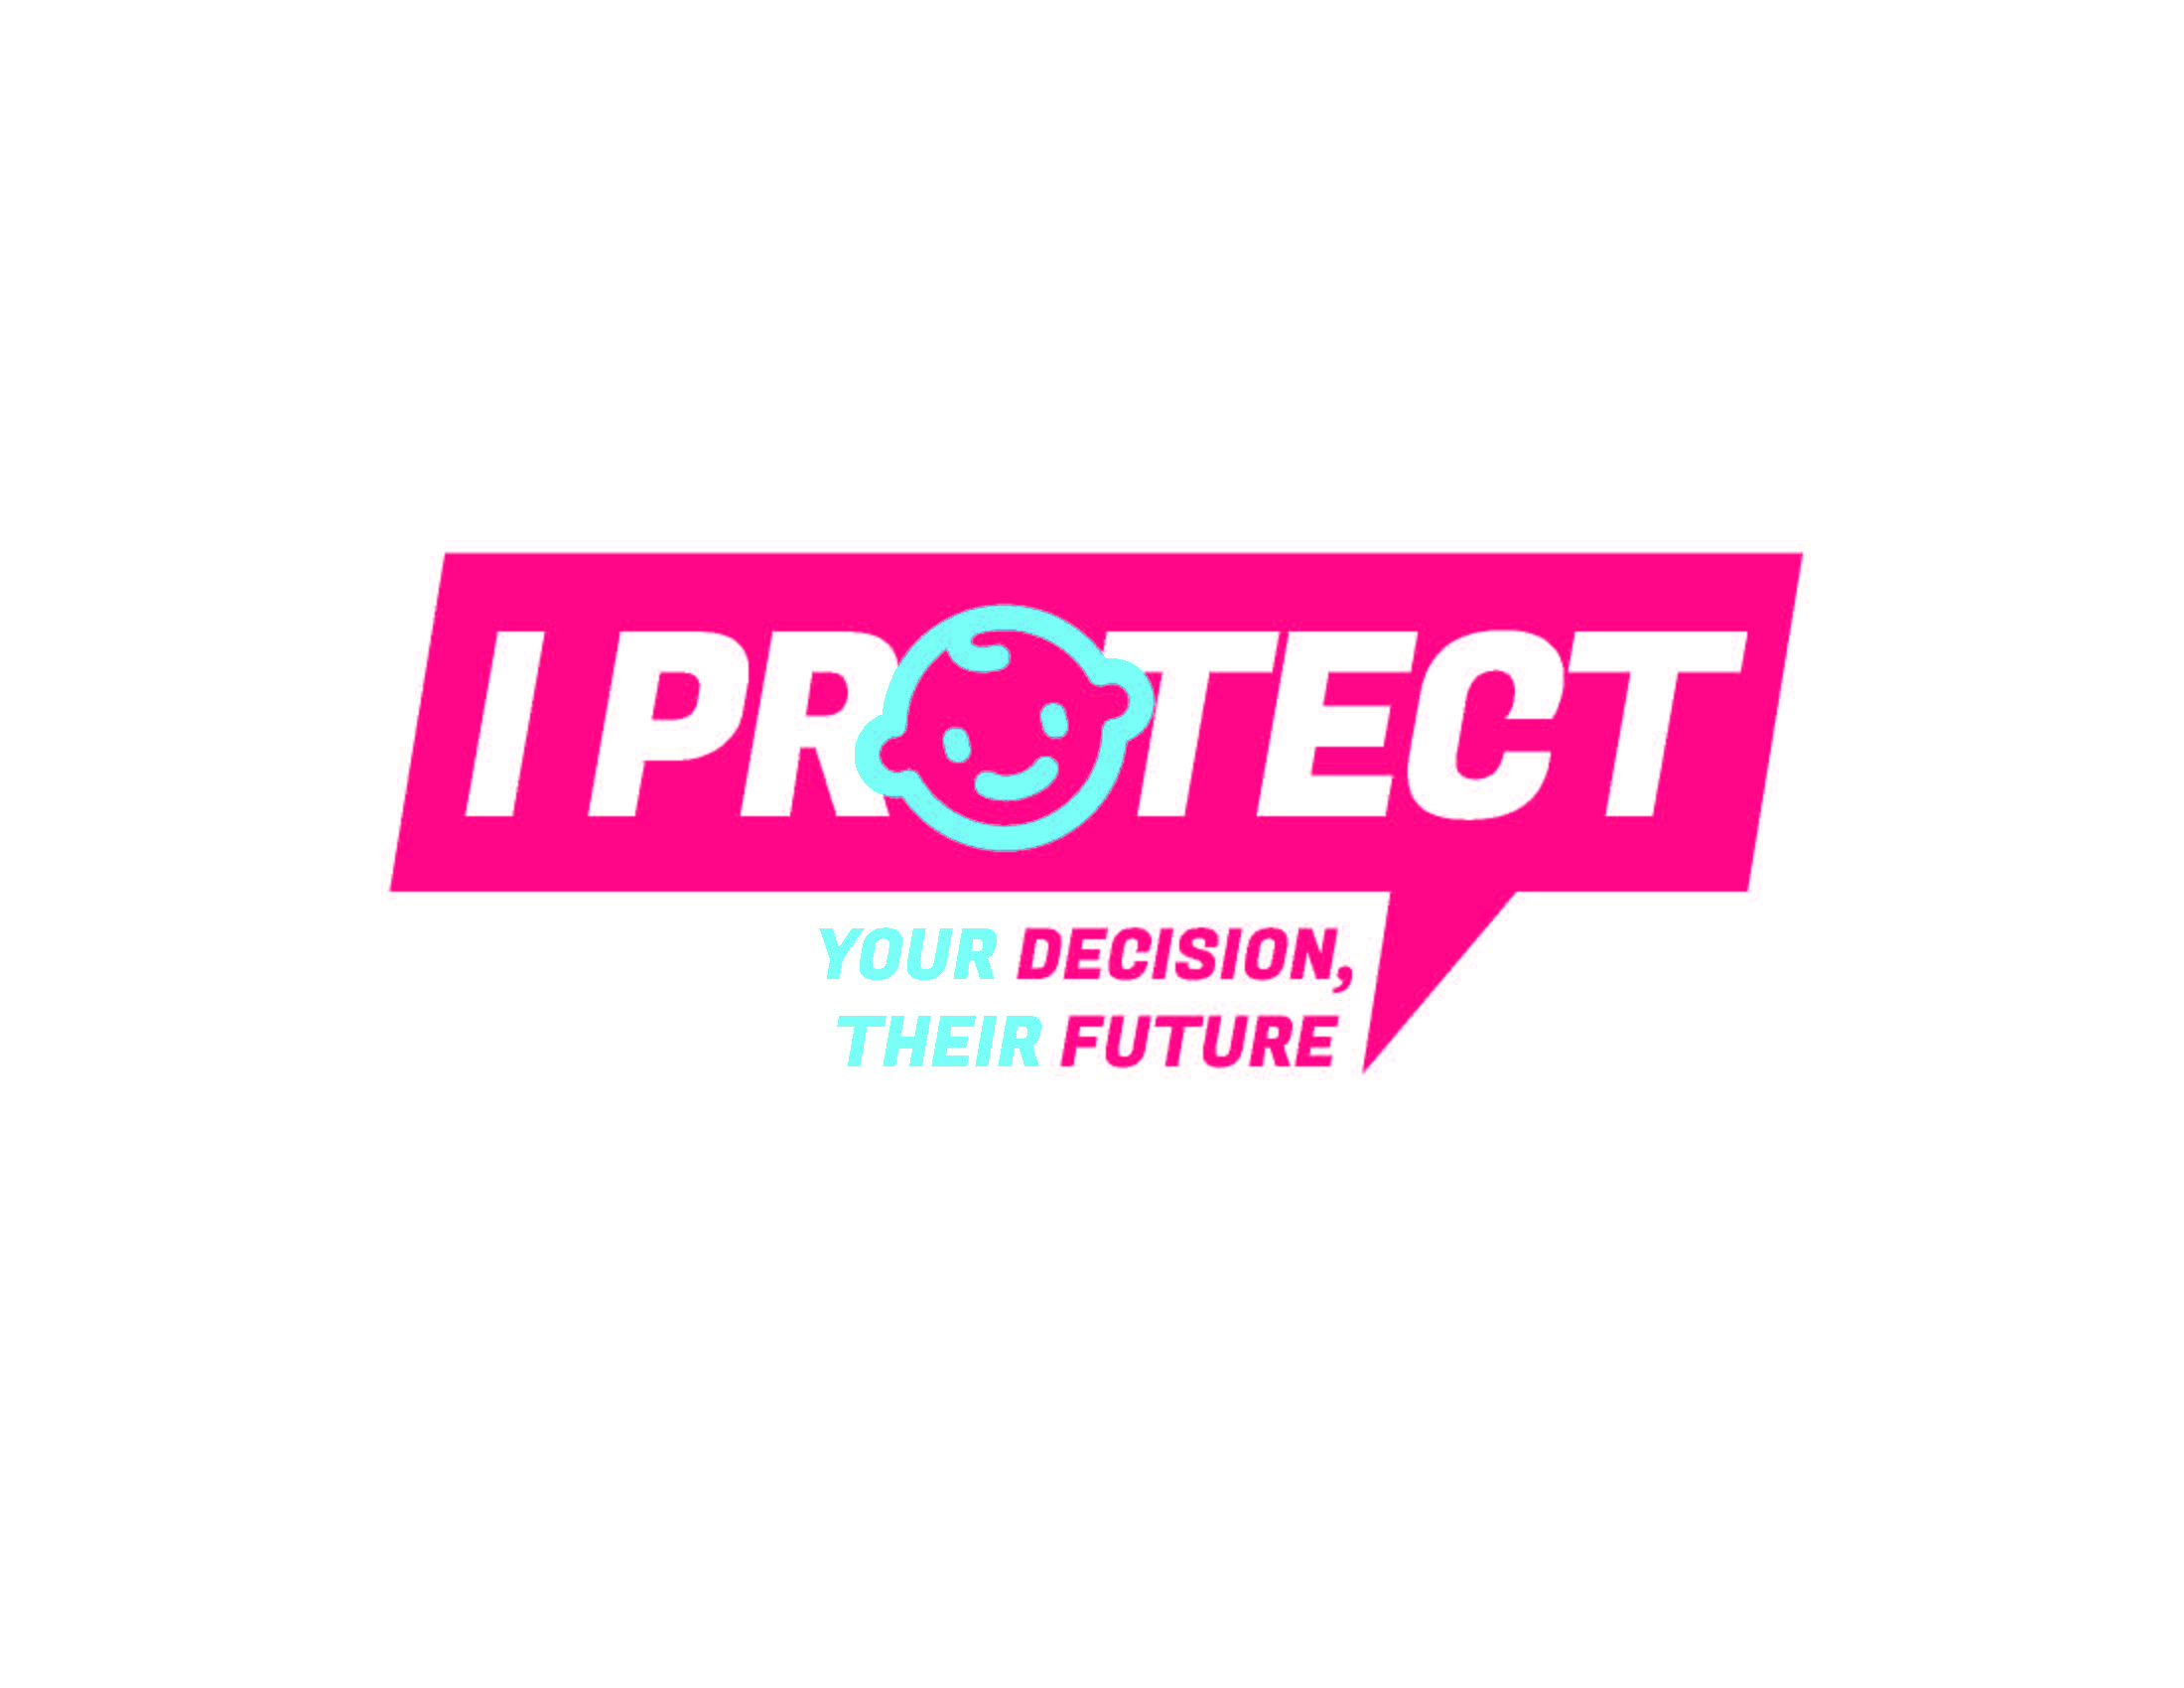 I Protect Logo Final Red1.jpg